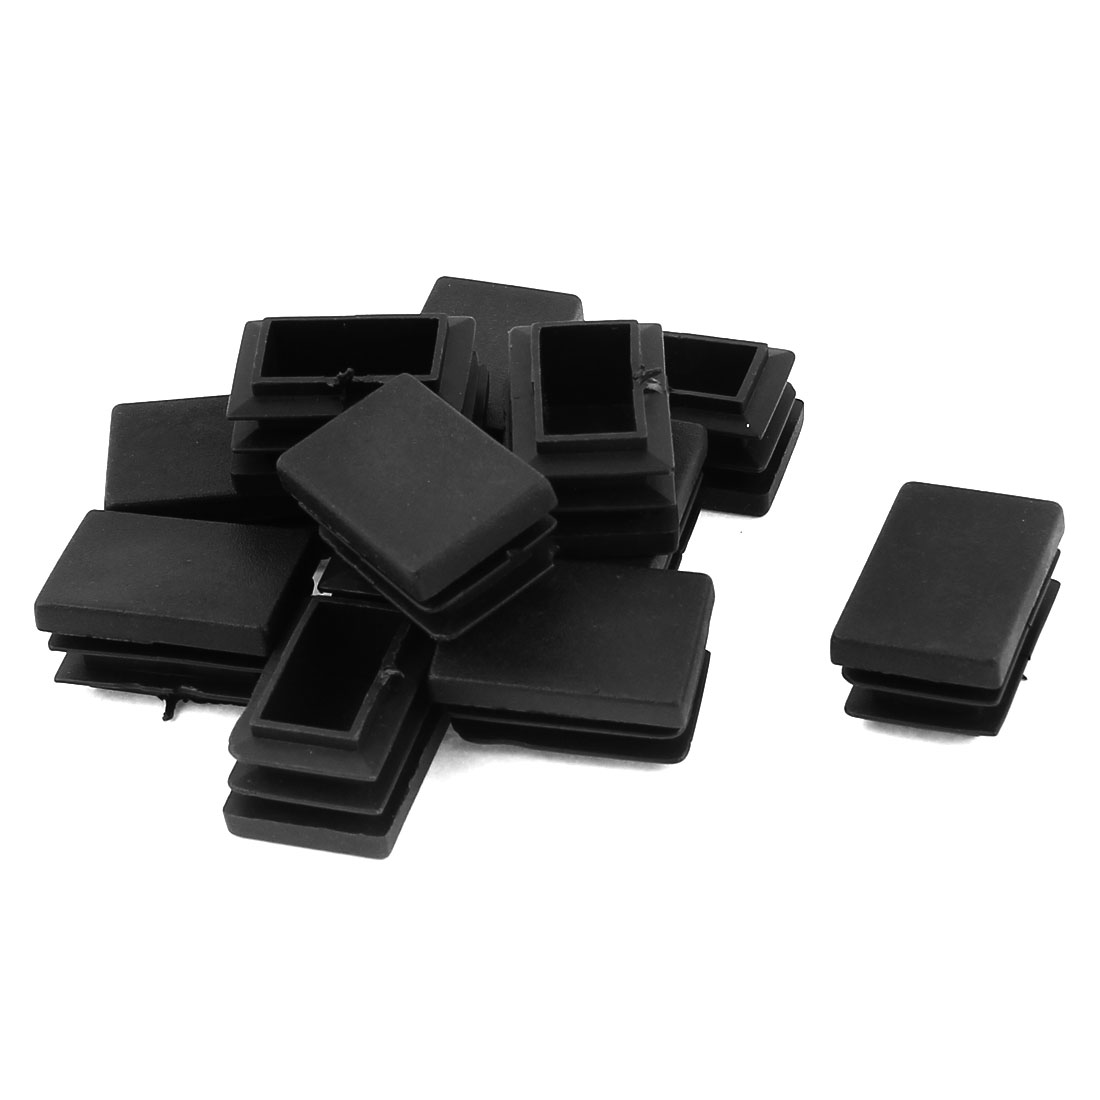 12 Pcs Black Plastic Rectangle Blanking End Caps Tubing Tube Inserts 20mm x 30mm